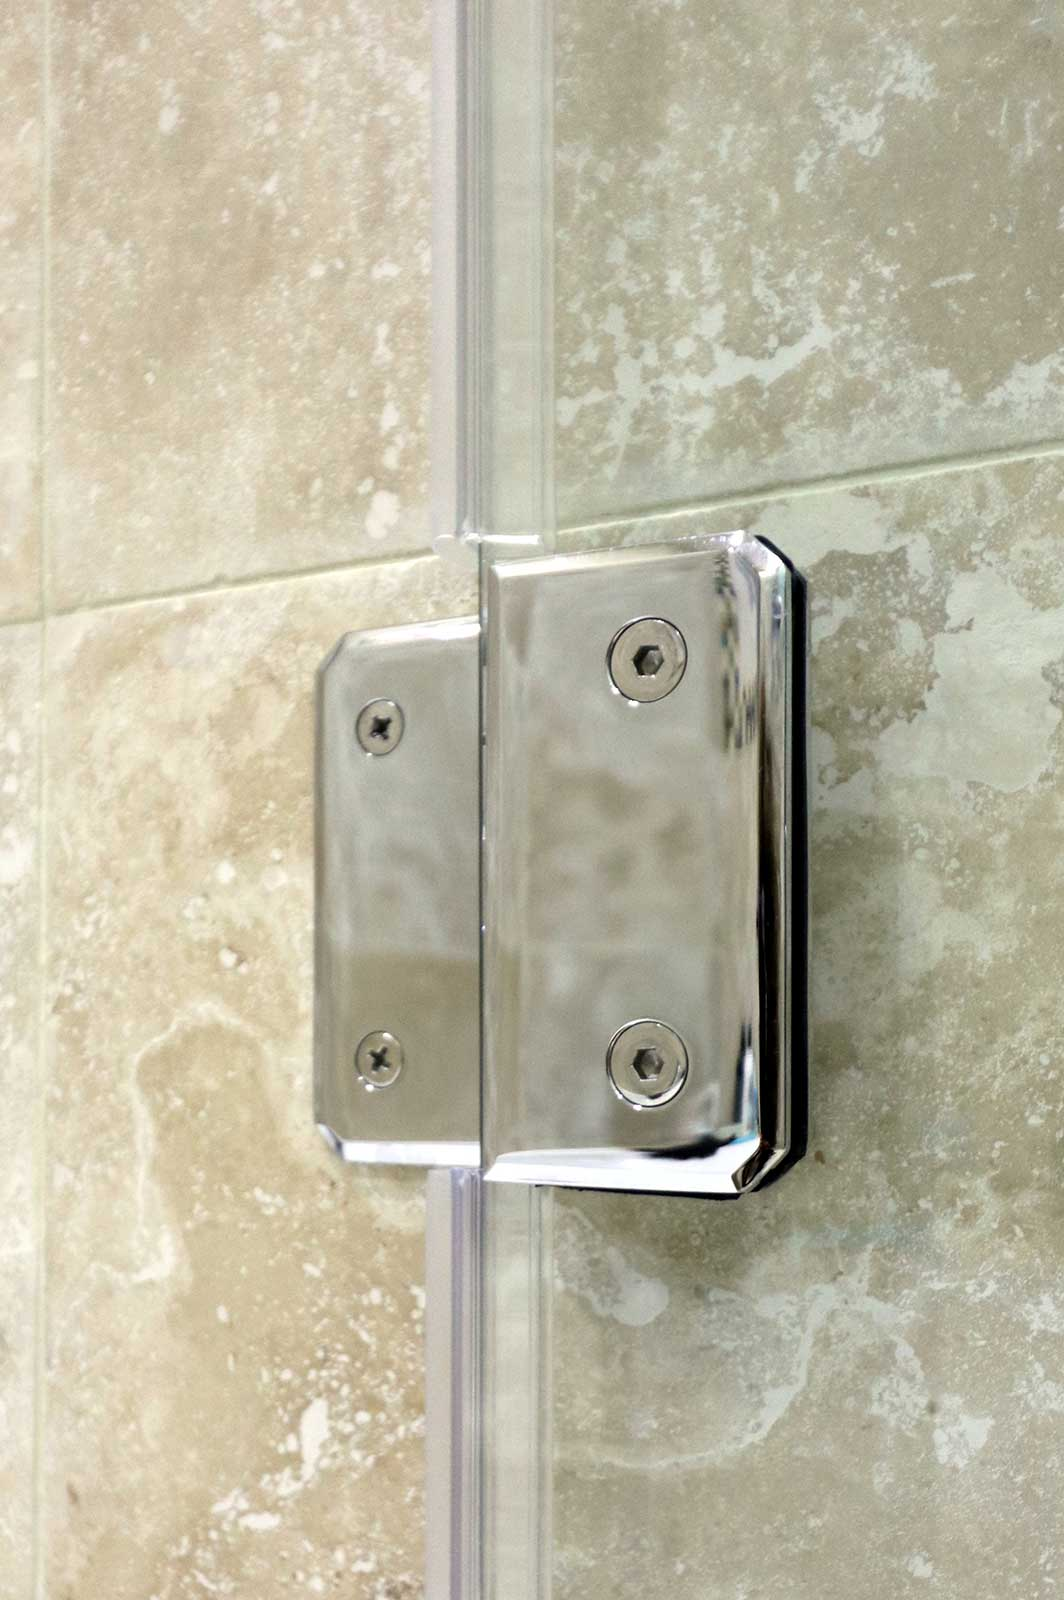 Specialist Bath Screen Hinge for Multi Fold Bath Screen